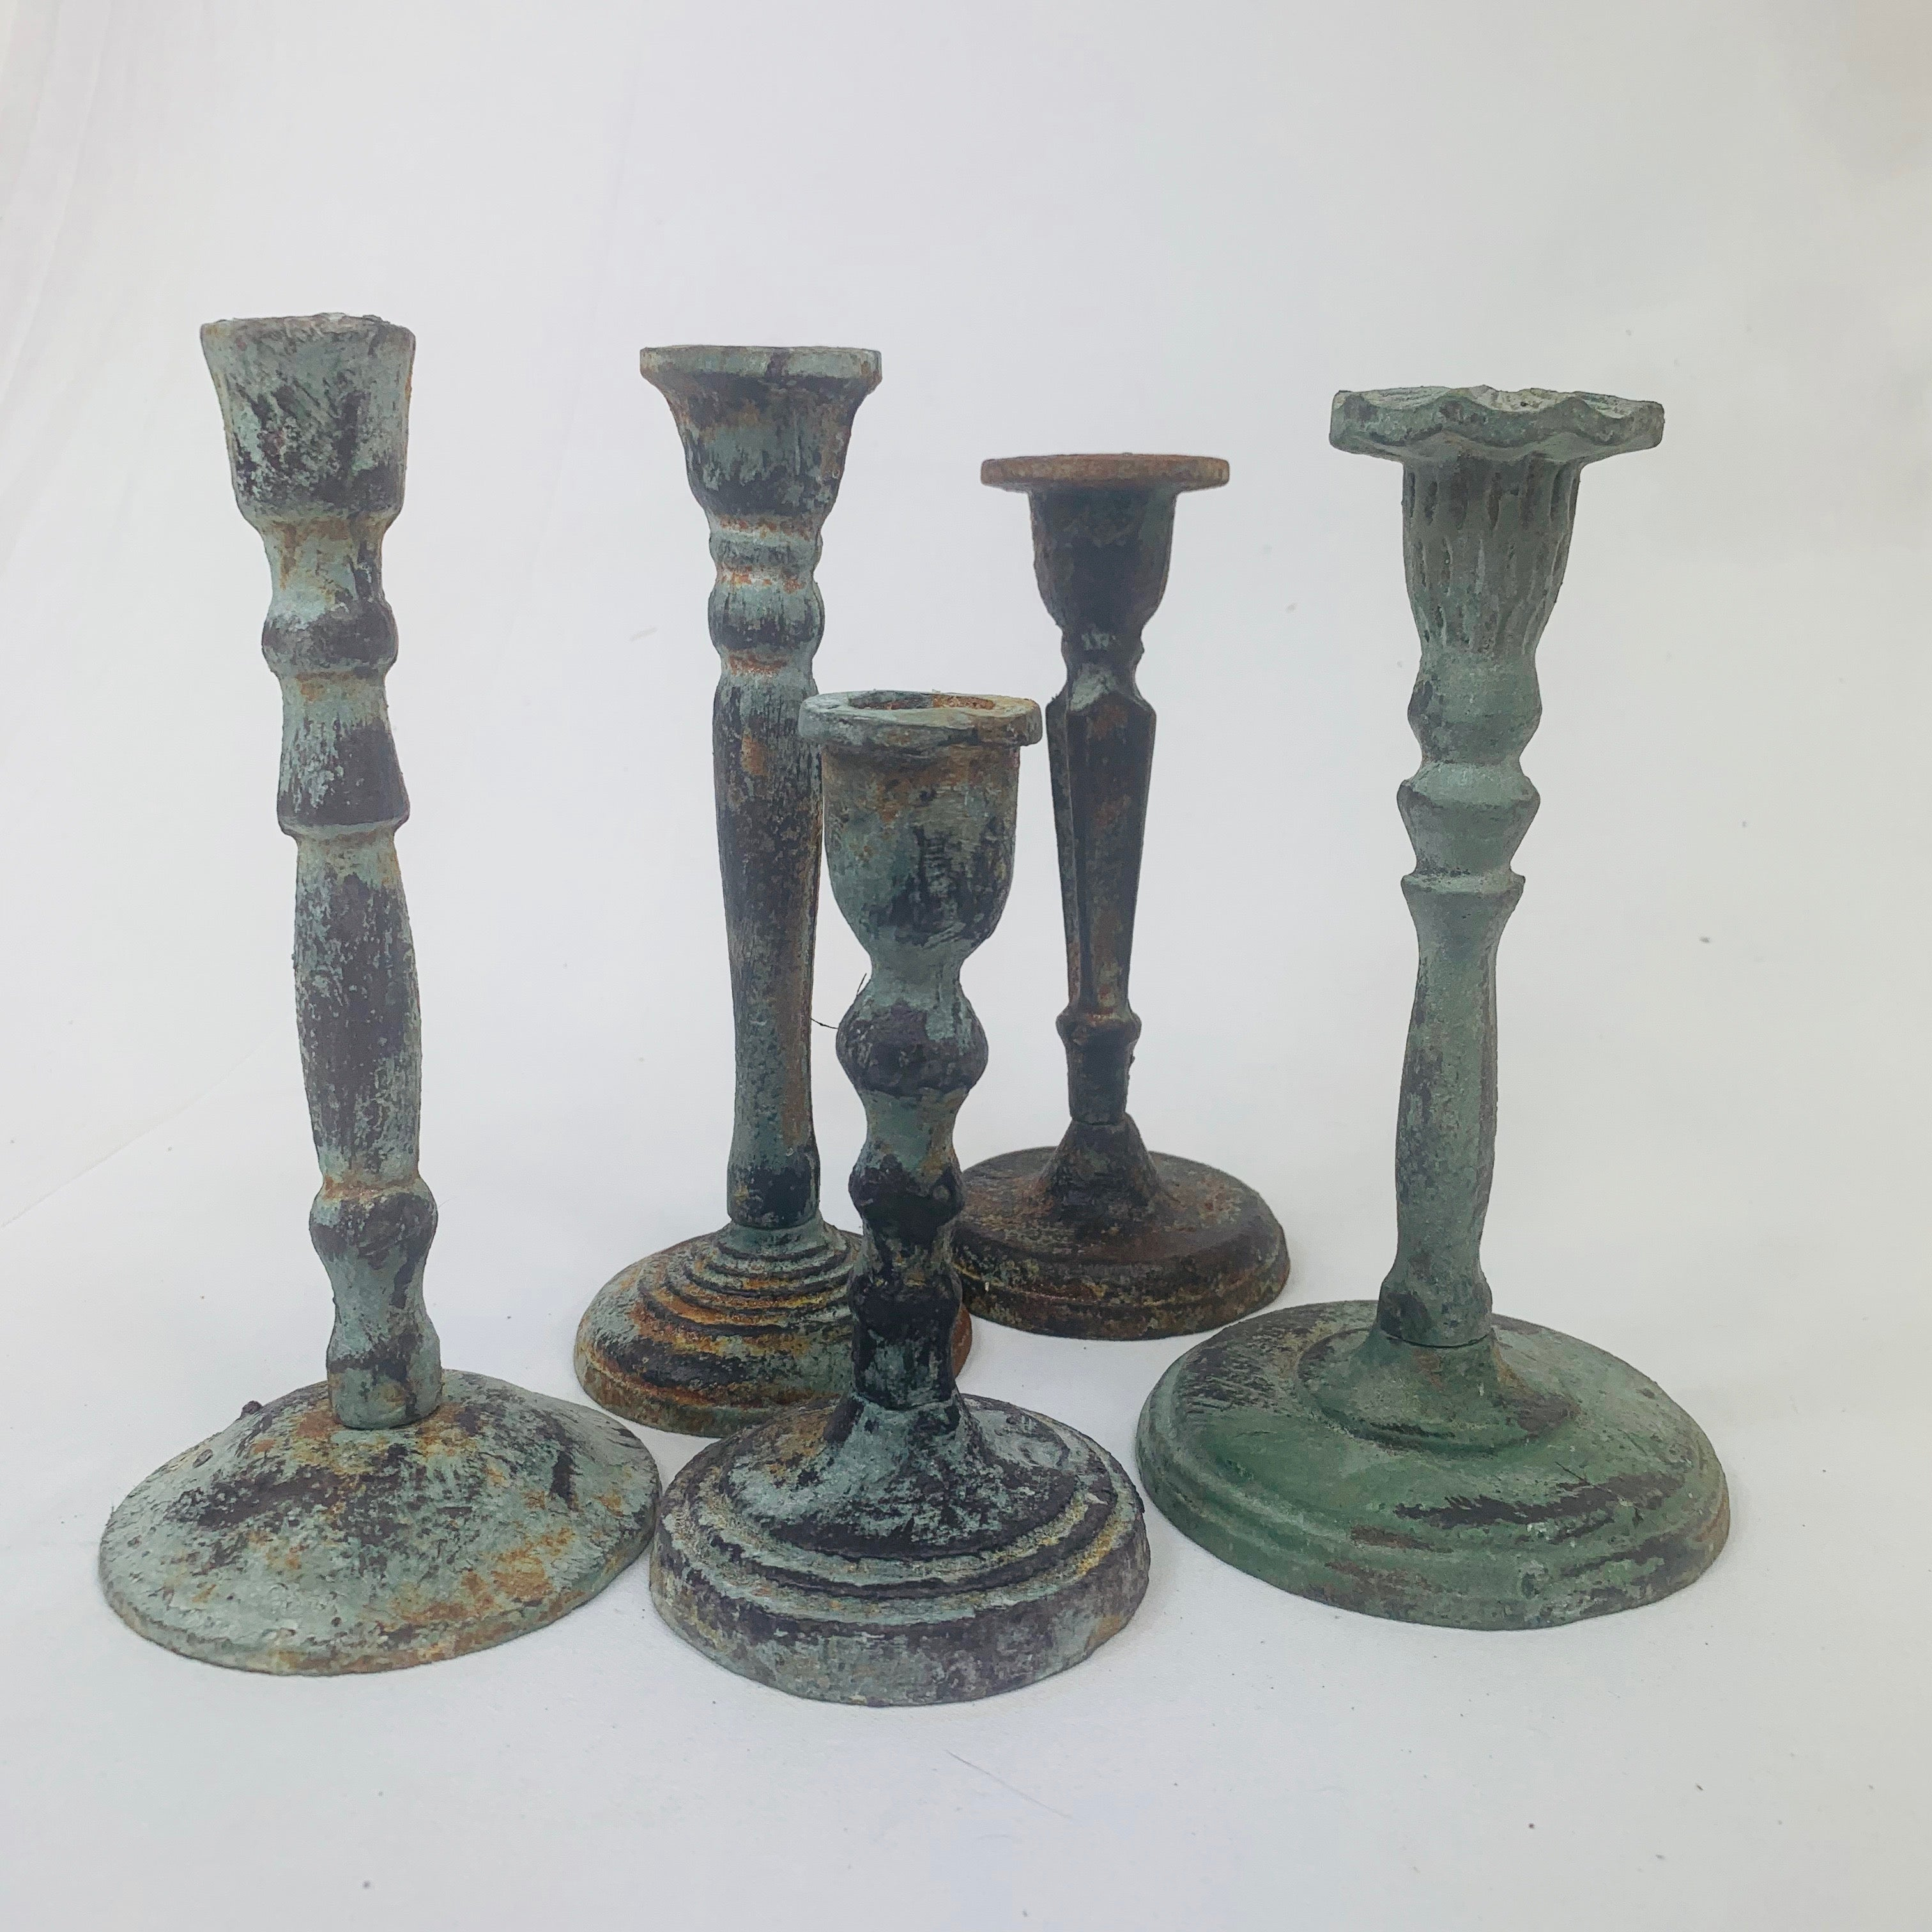 RUSTIC CANDLESTICK HOLDER